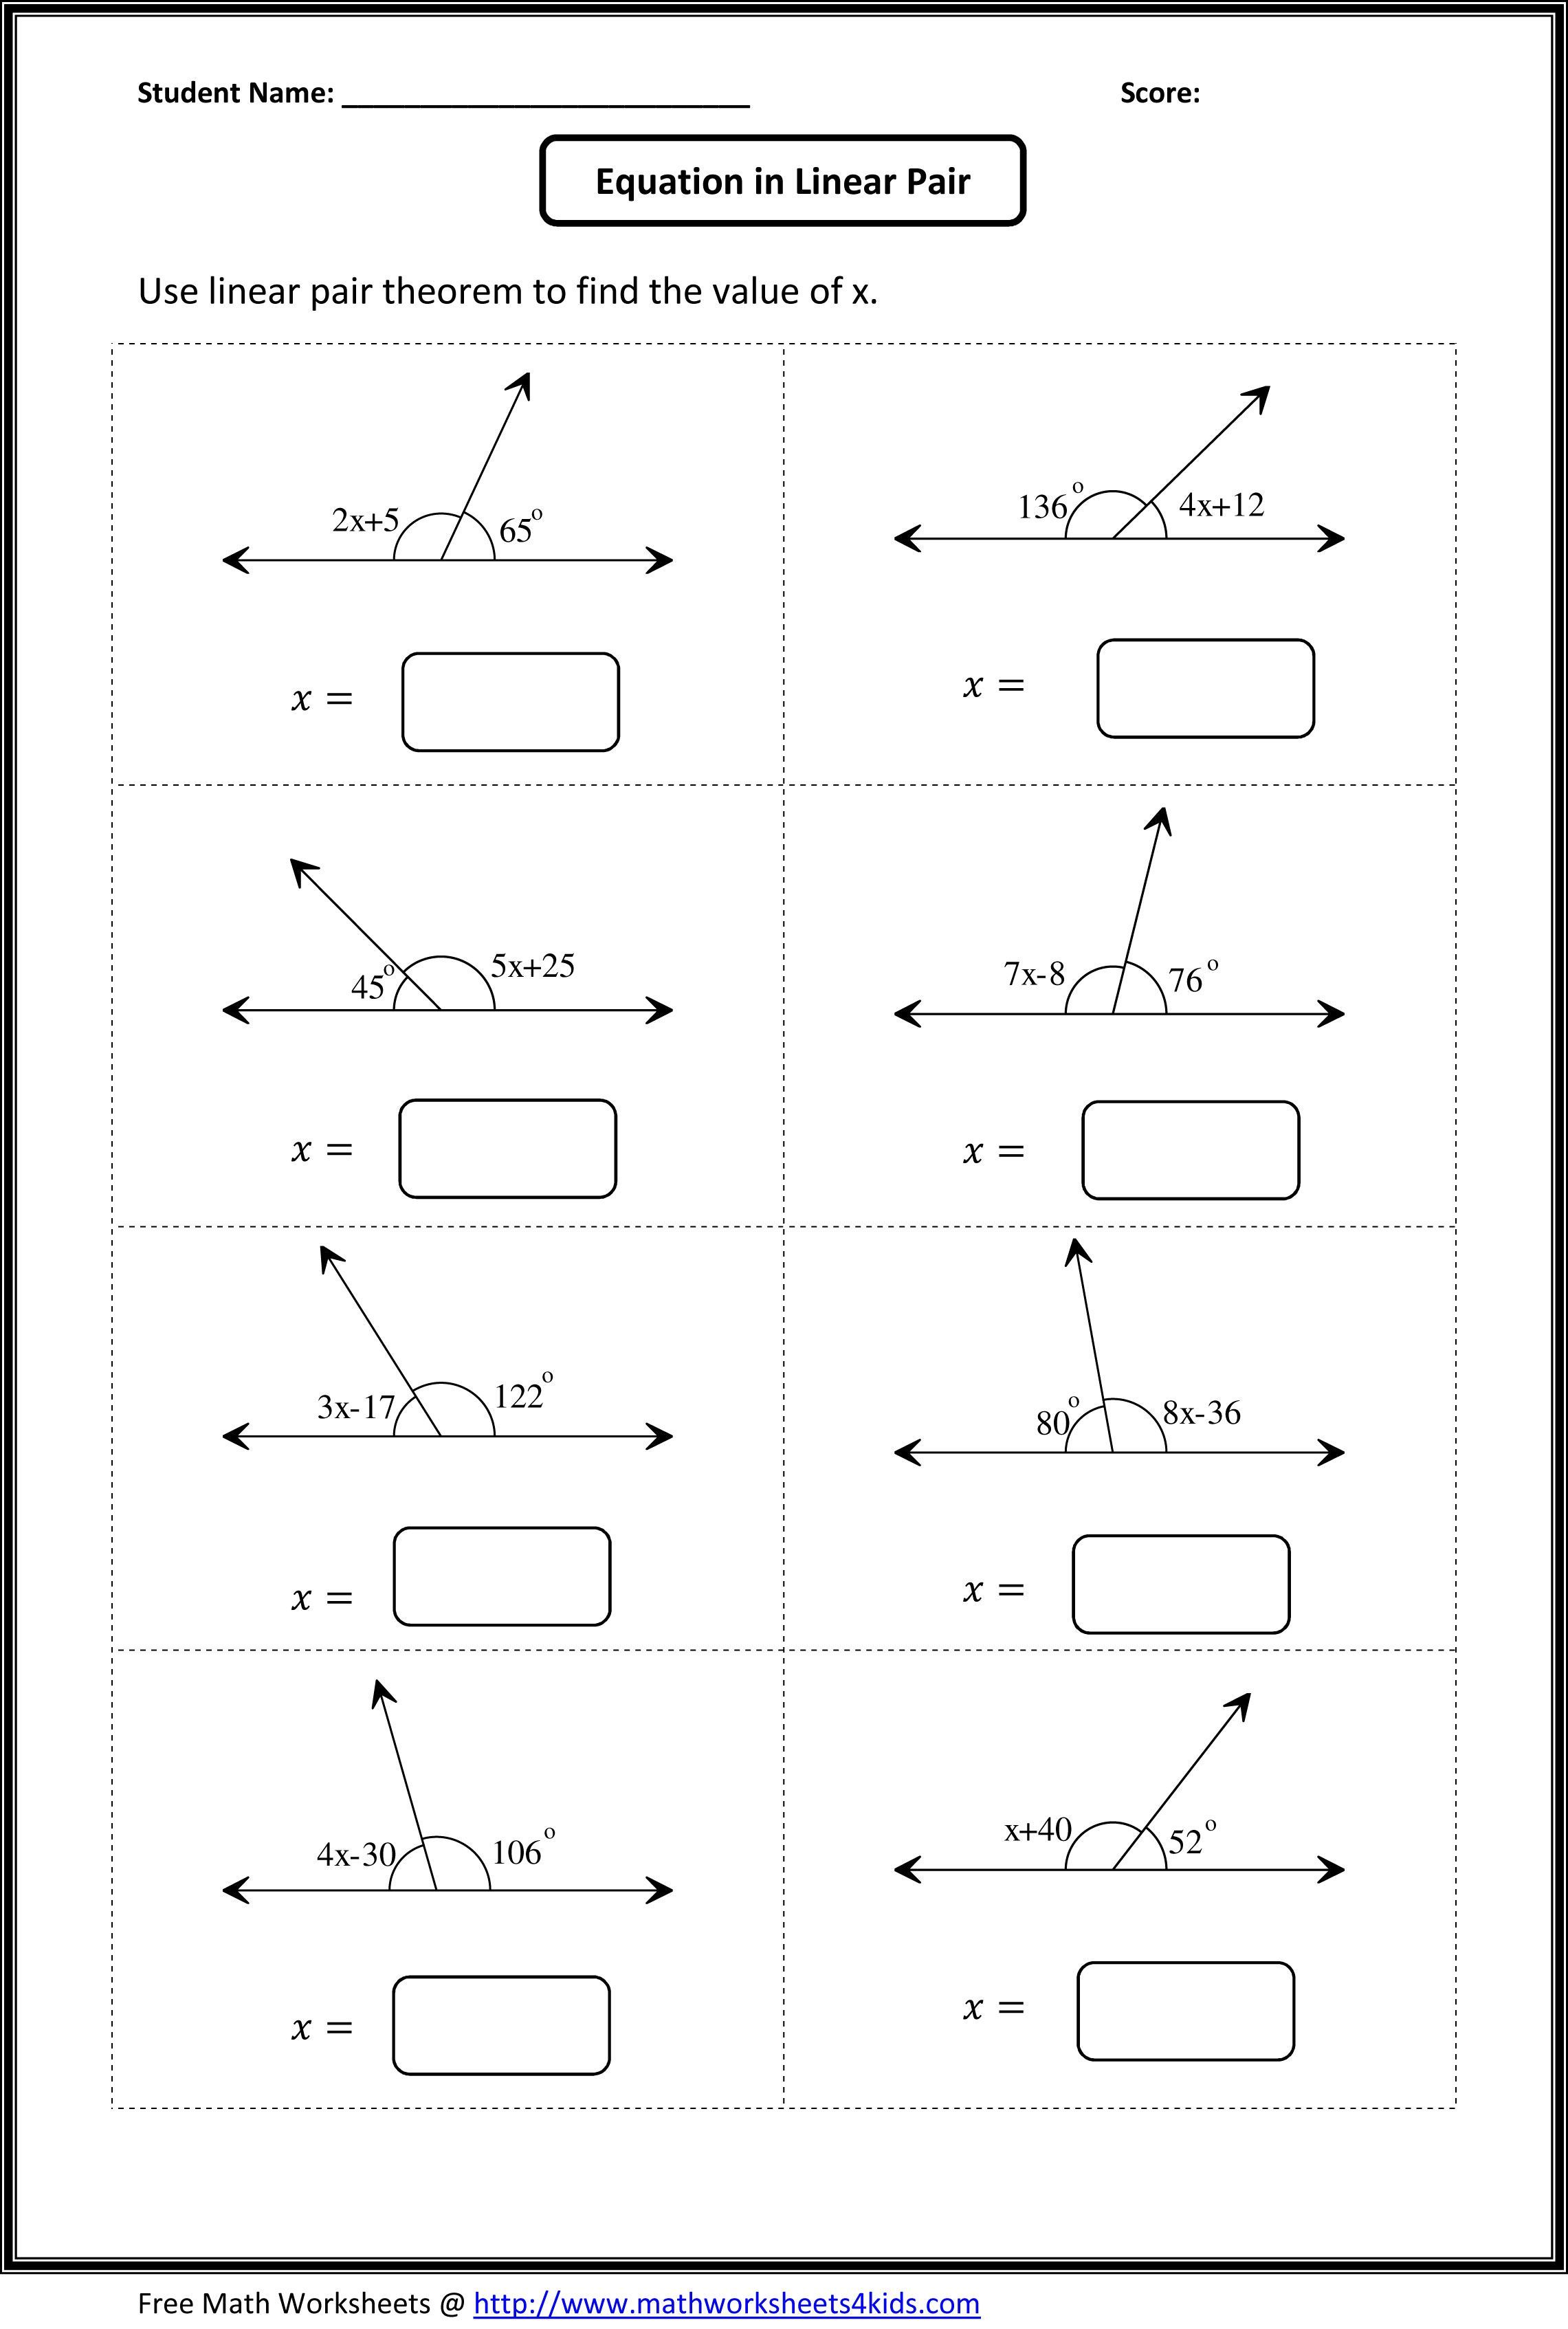 Angles Worksheets Geometry Worksheets Angles Worksheet Math In 2021 Geometry Worksheets Angles Worksheet Math